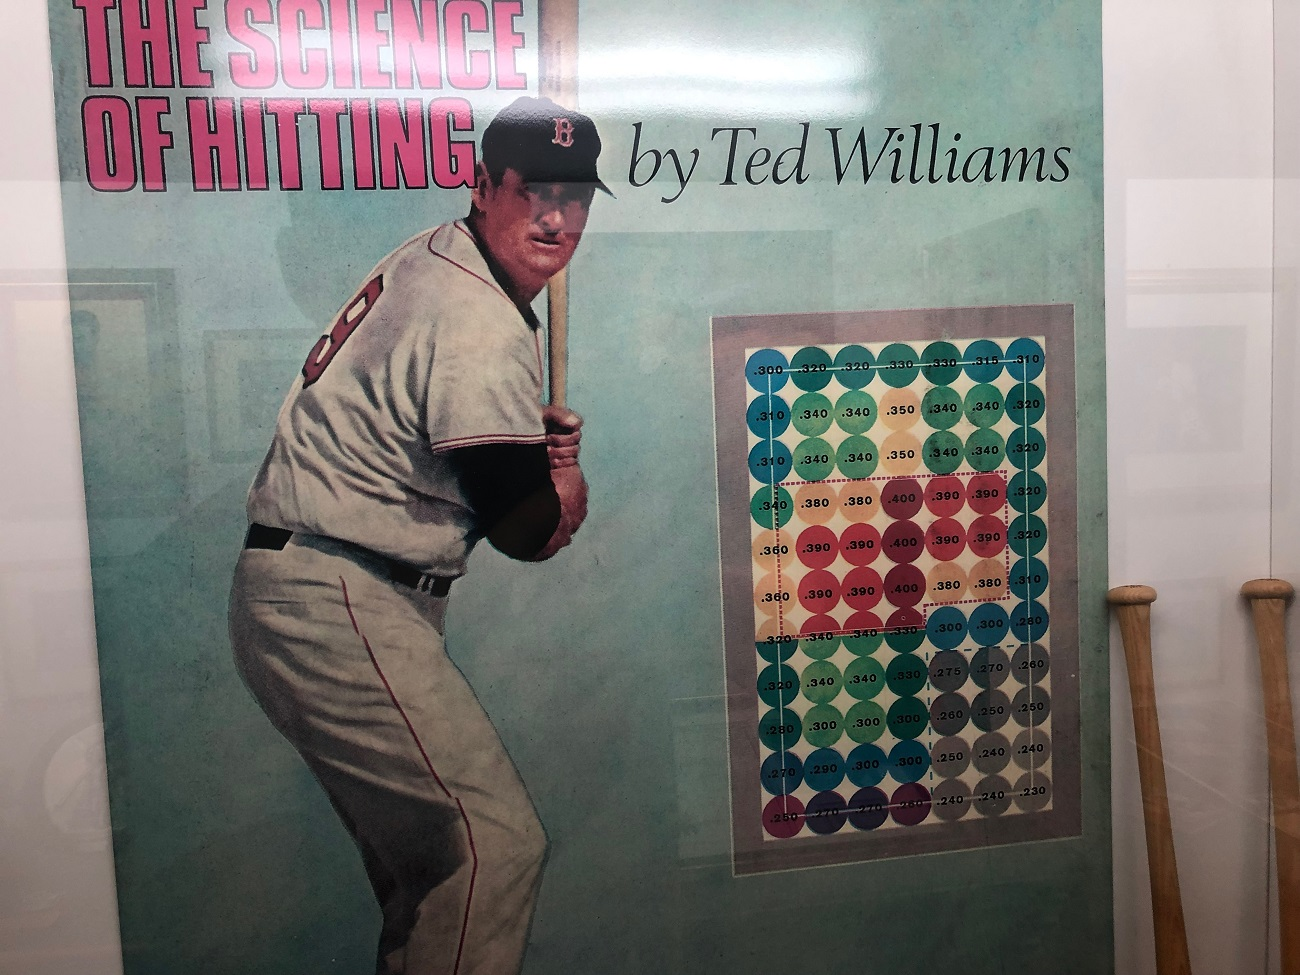 Ted Williams Hitting Zone at Rays Stadium